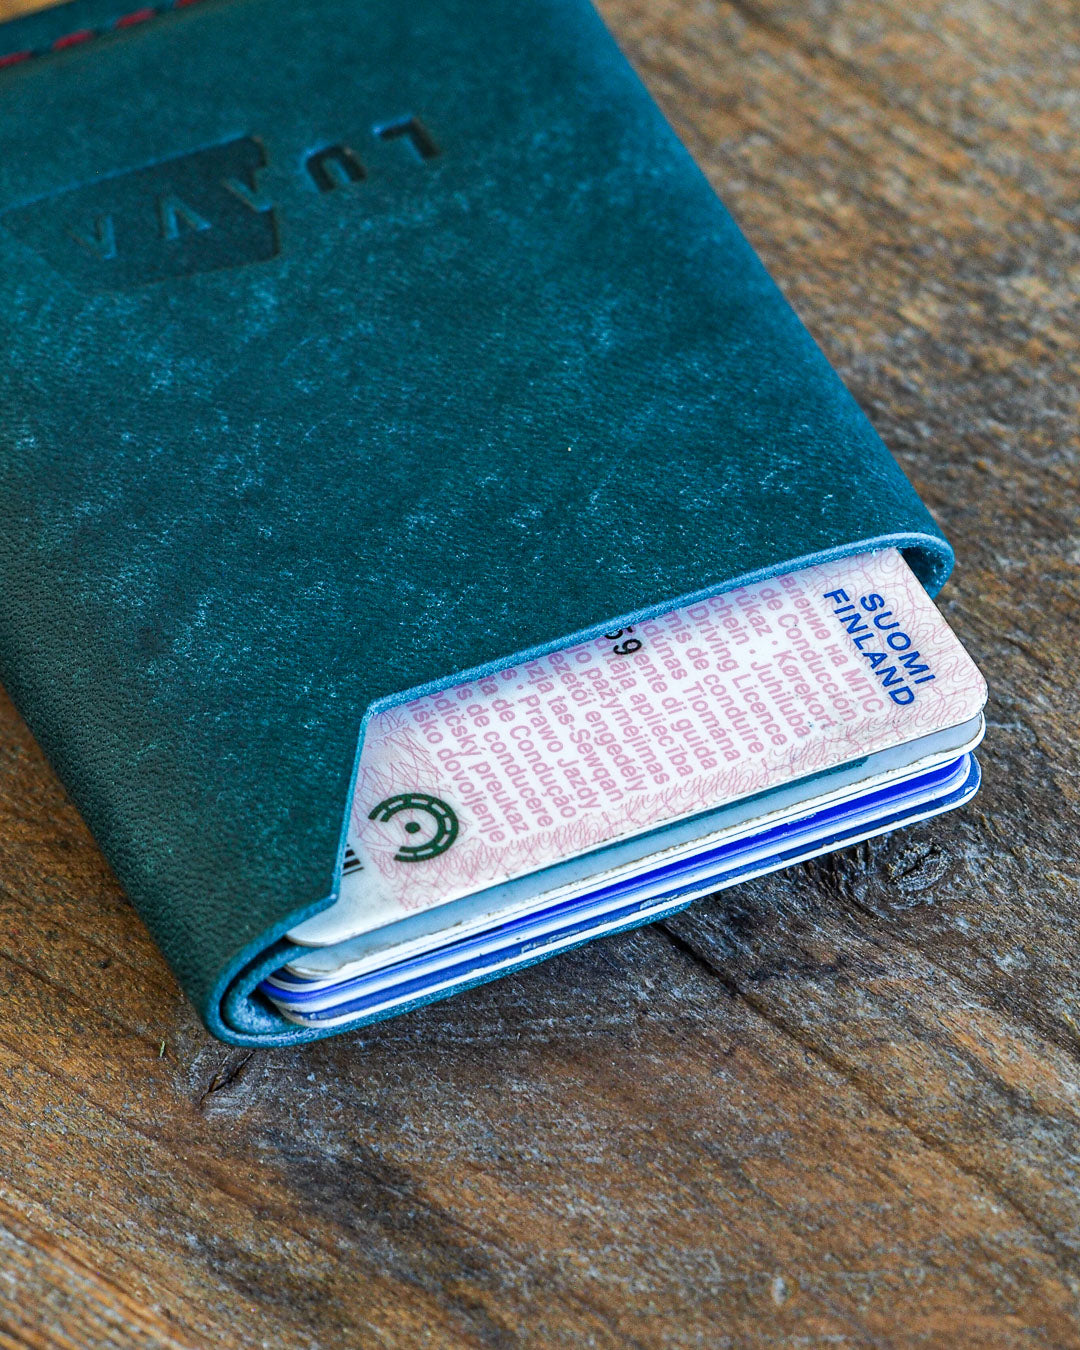 Luava handmade leather wallet handcrafted card holder wrap cardholder made in finland vortex maya turquoise back in use angle close up